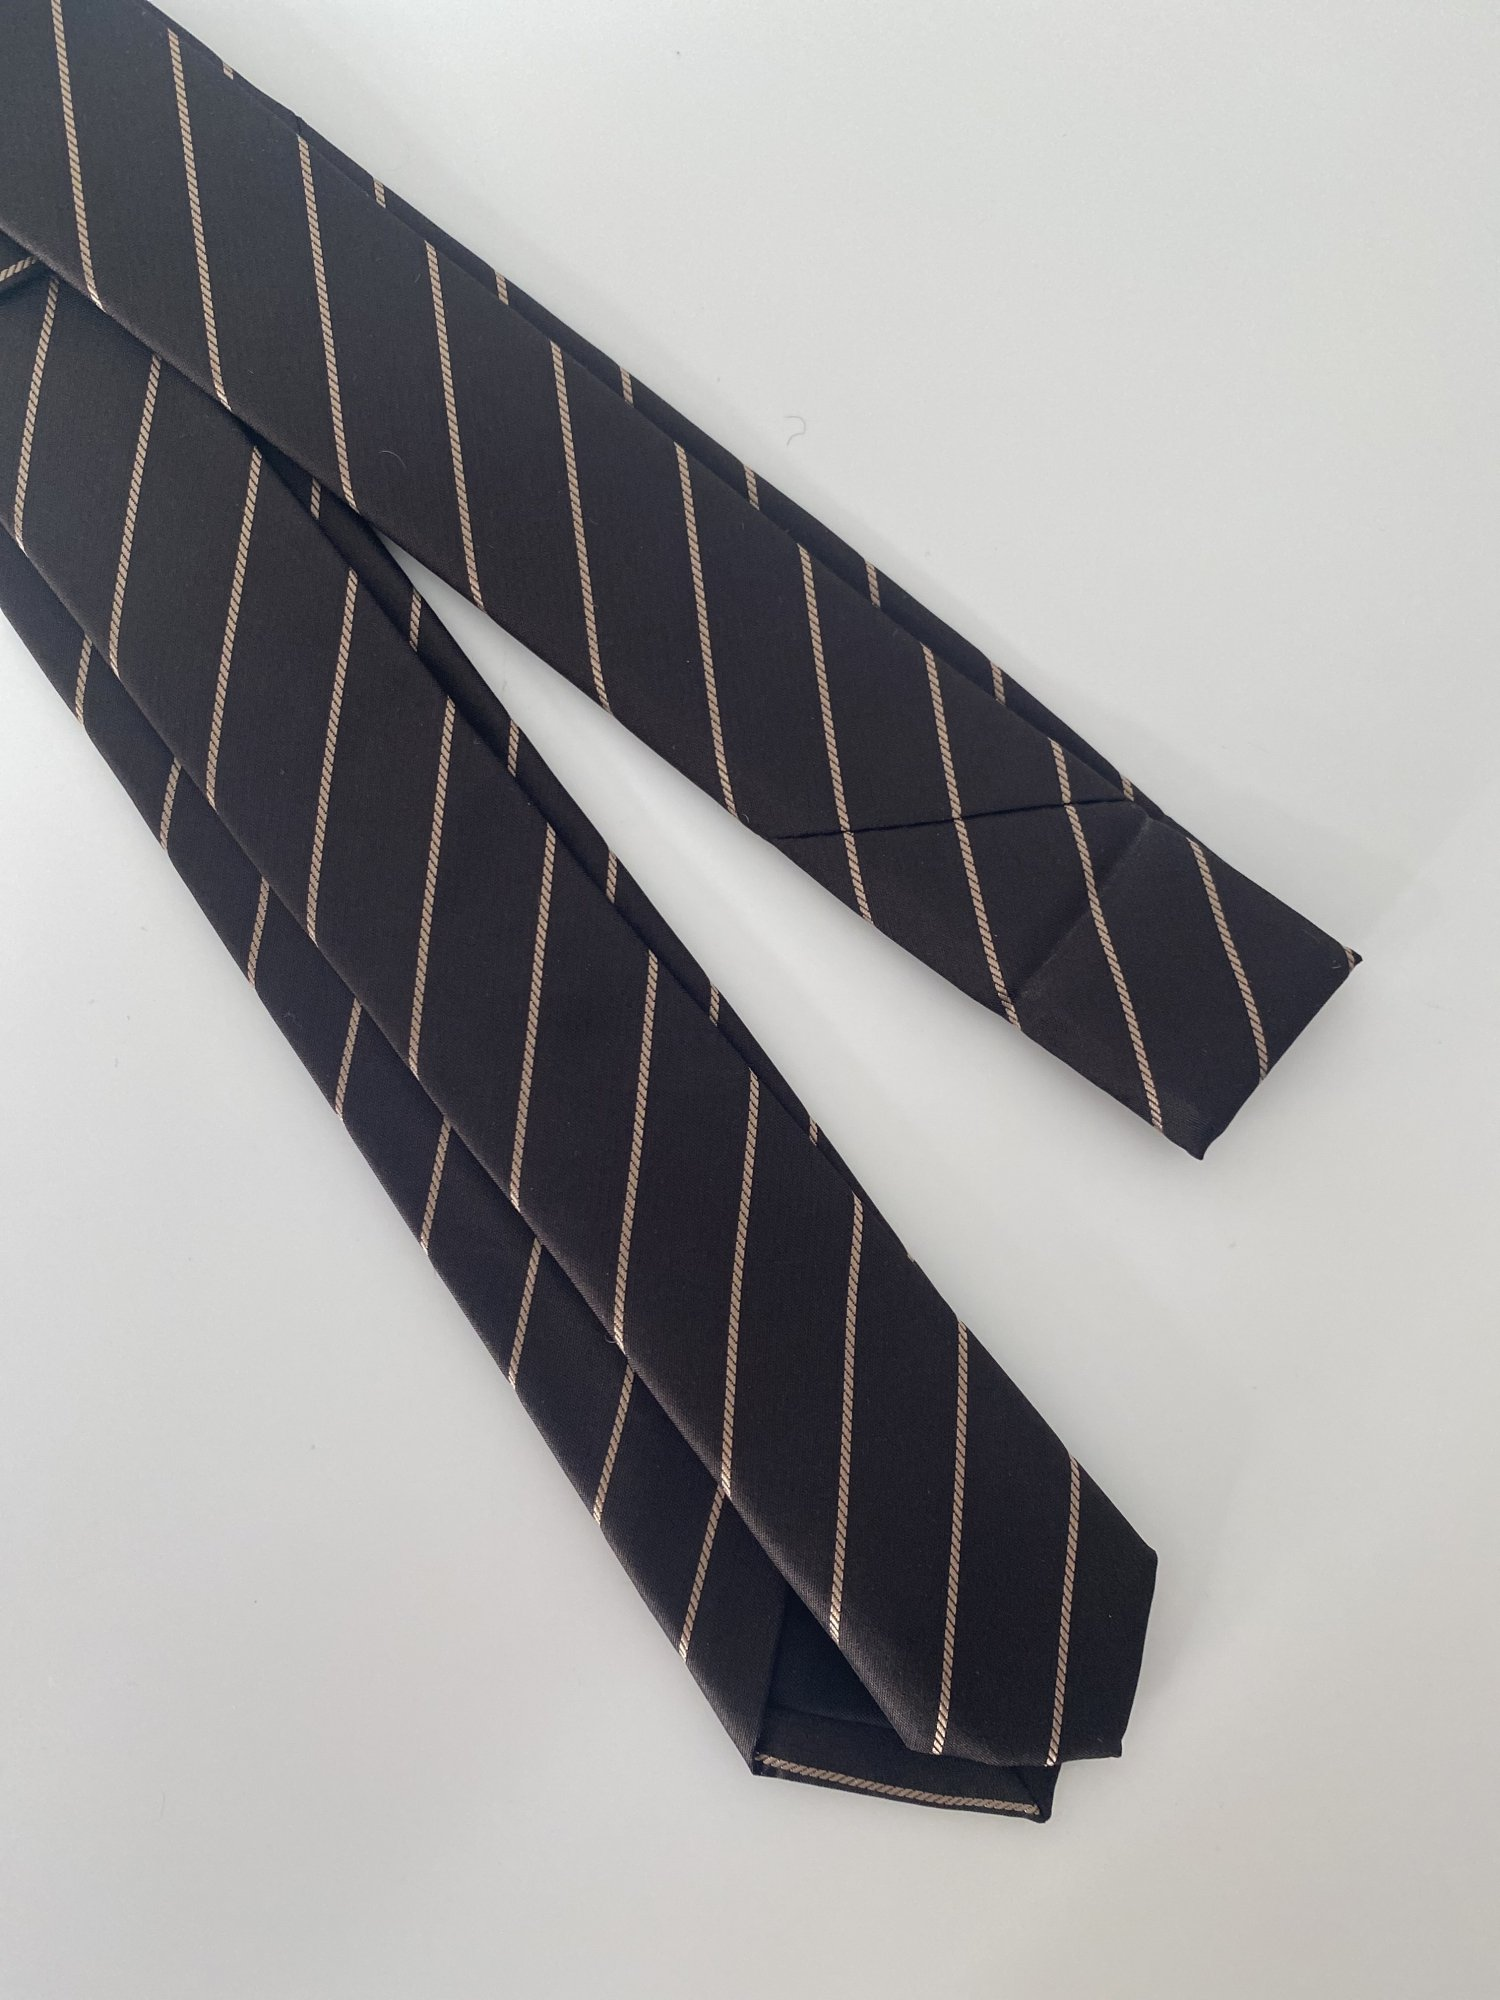 LITTLEBIG<br />Stripe Silk Narrow Tie / Brown<img class='new_mark_img2' src='https://img.shop-pro.jp/img/new/icons47.gif' style='border:none;display:inline;margin:0px;padding:0px;width:auto;' />